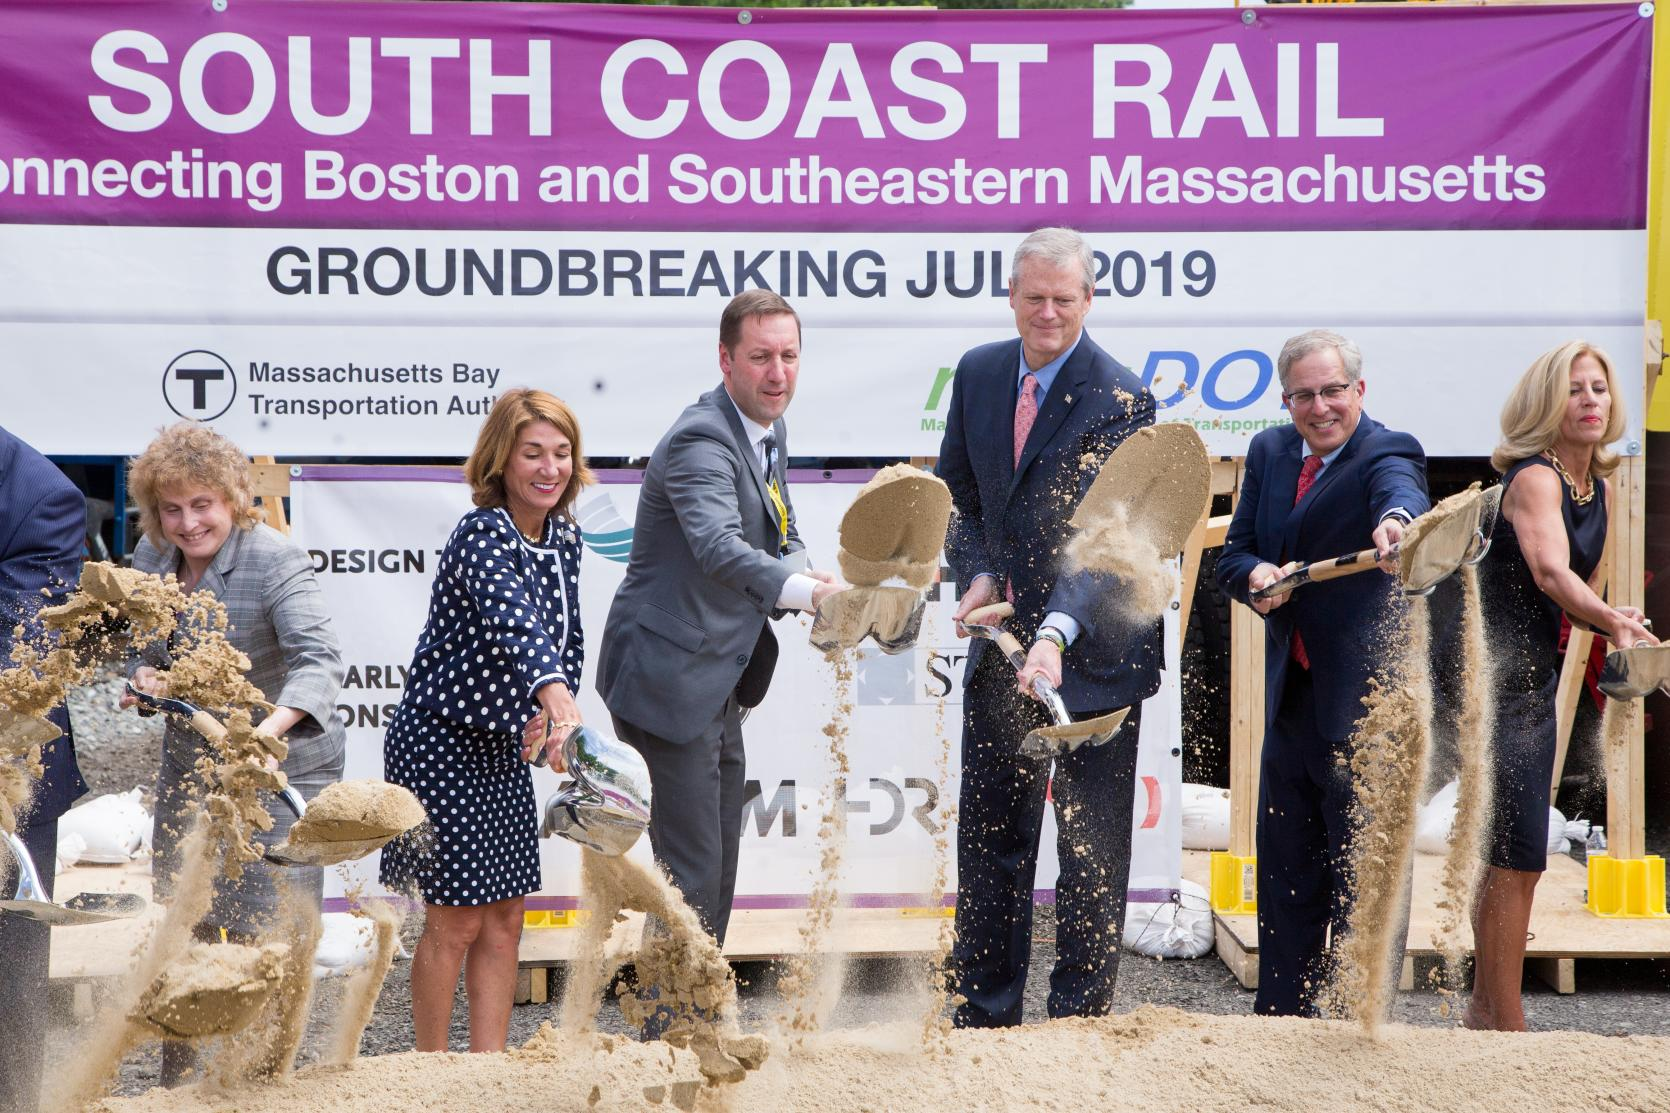 Baker-Polito Administration Celebrates South Coast Rail Groundbreaking